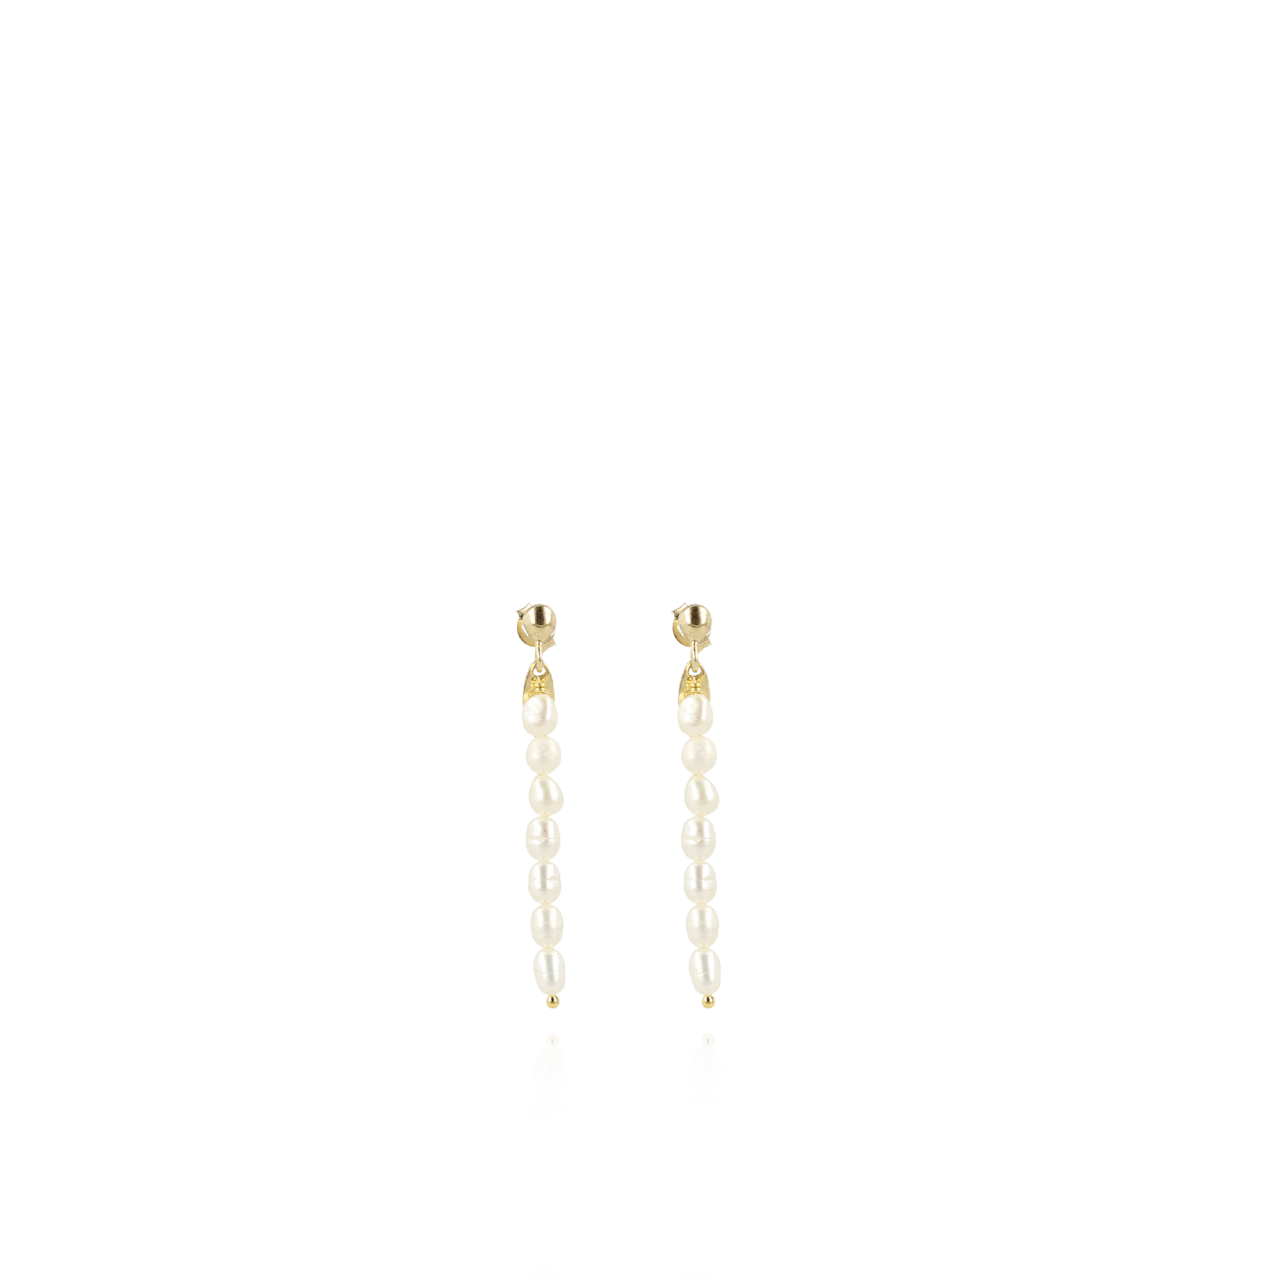 Pearl earrings vertical bar ovoid